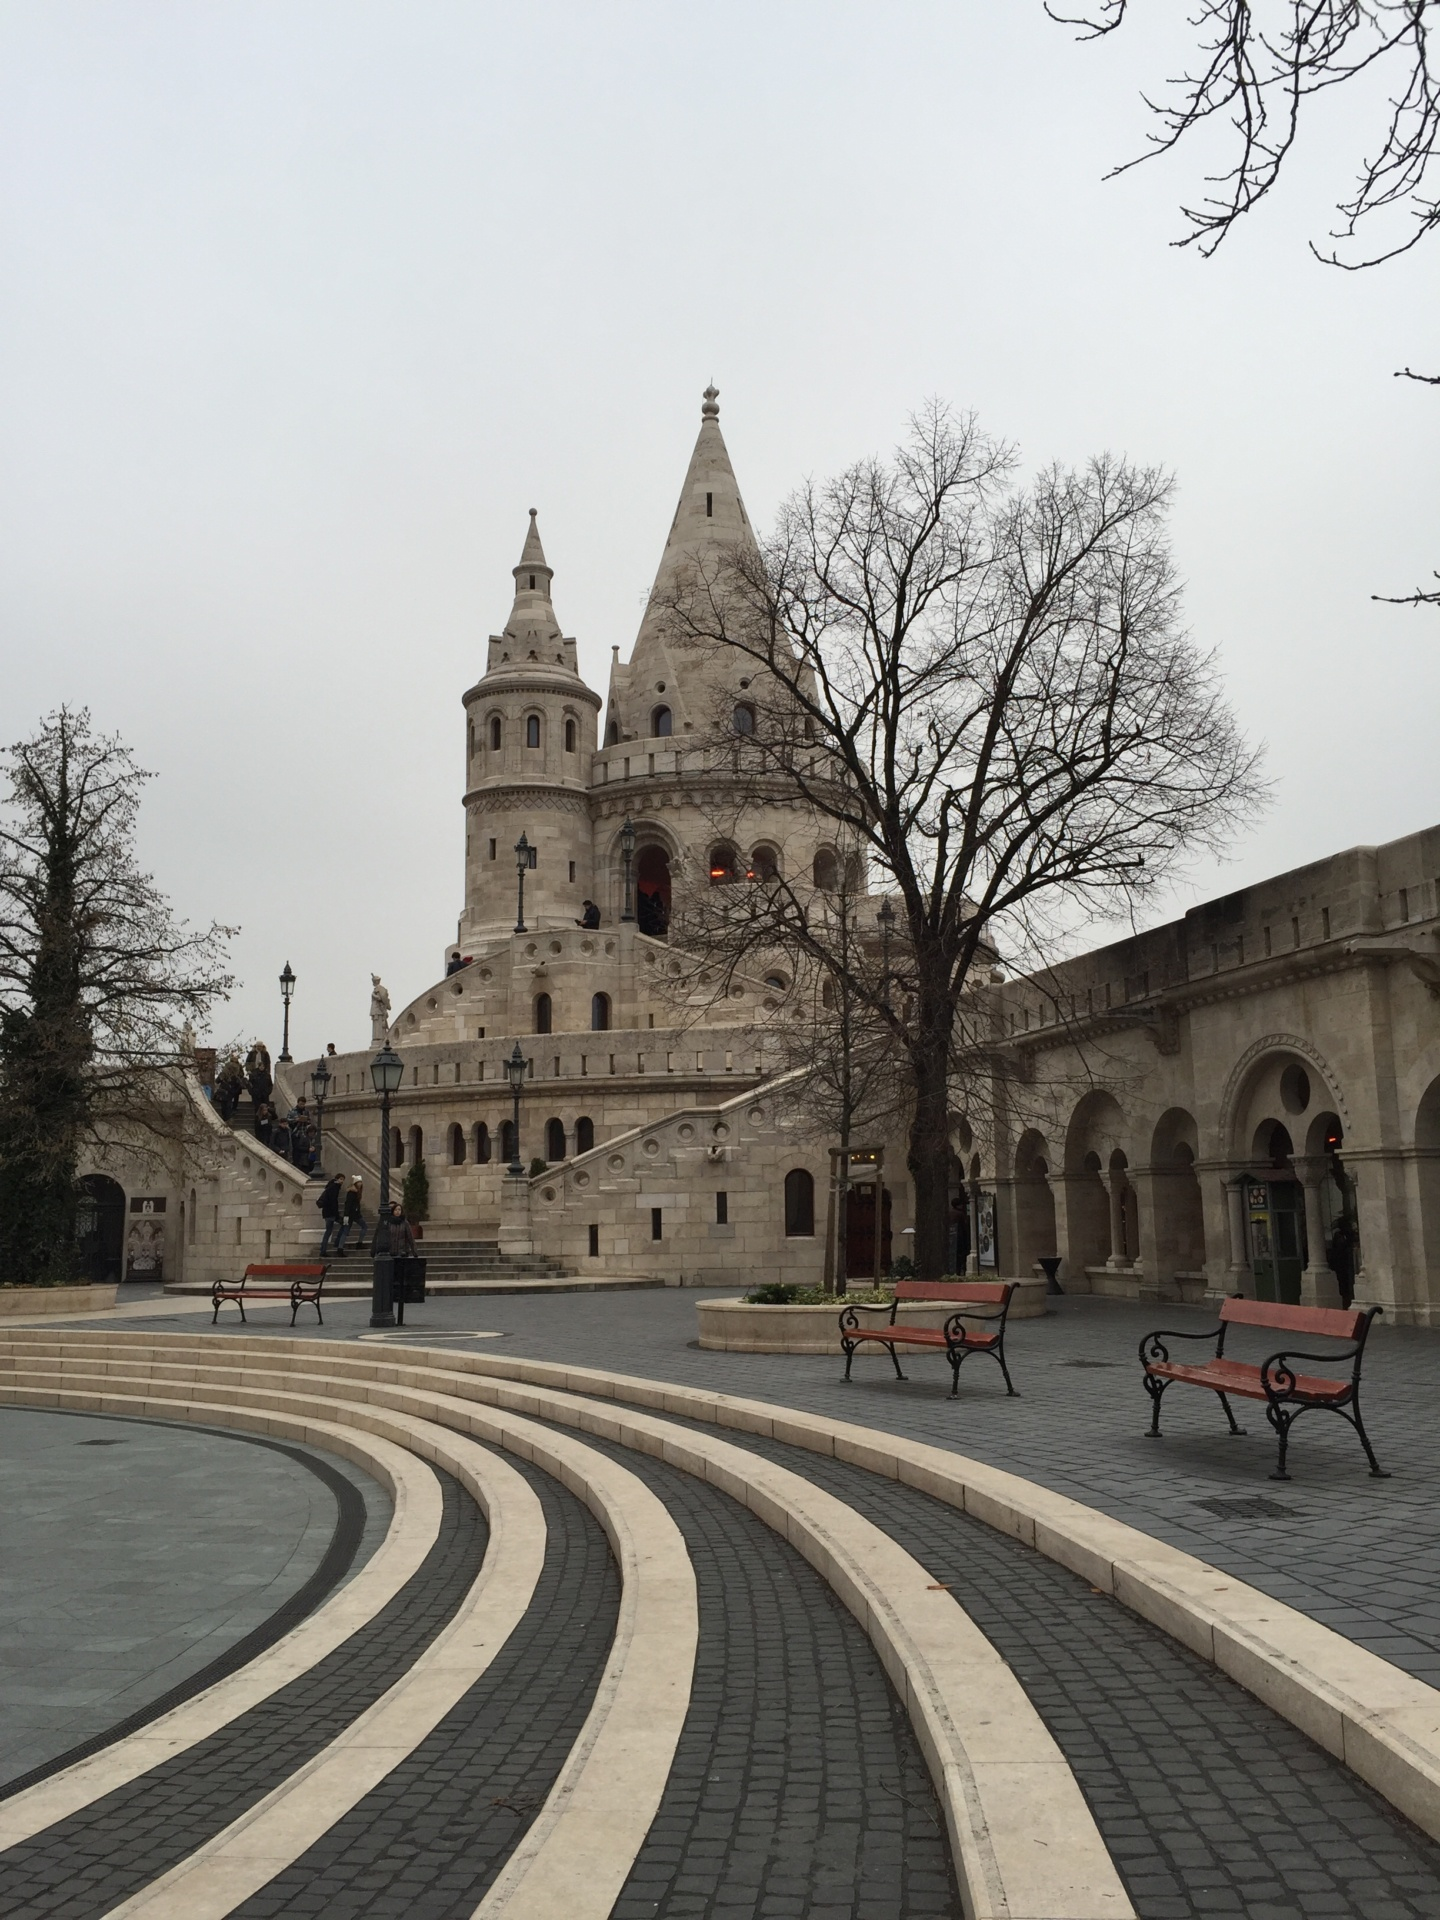 Wanderlustbee Christmas break in budapest]